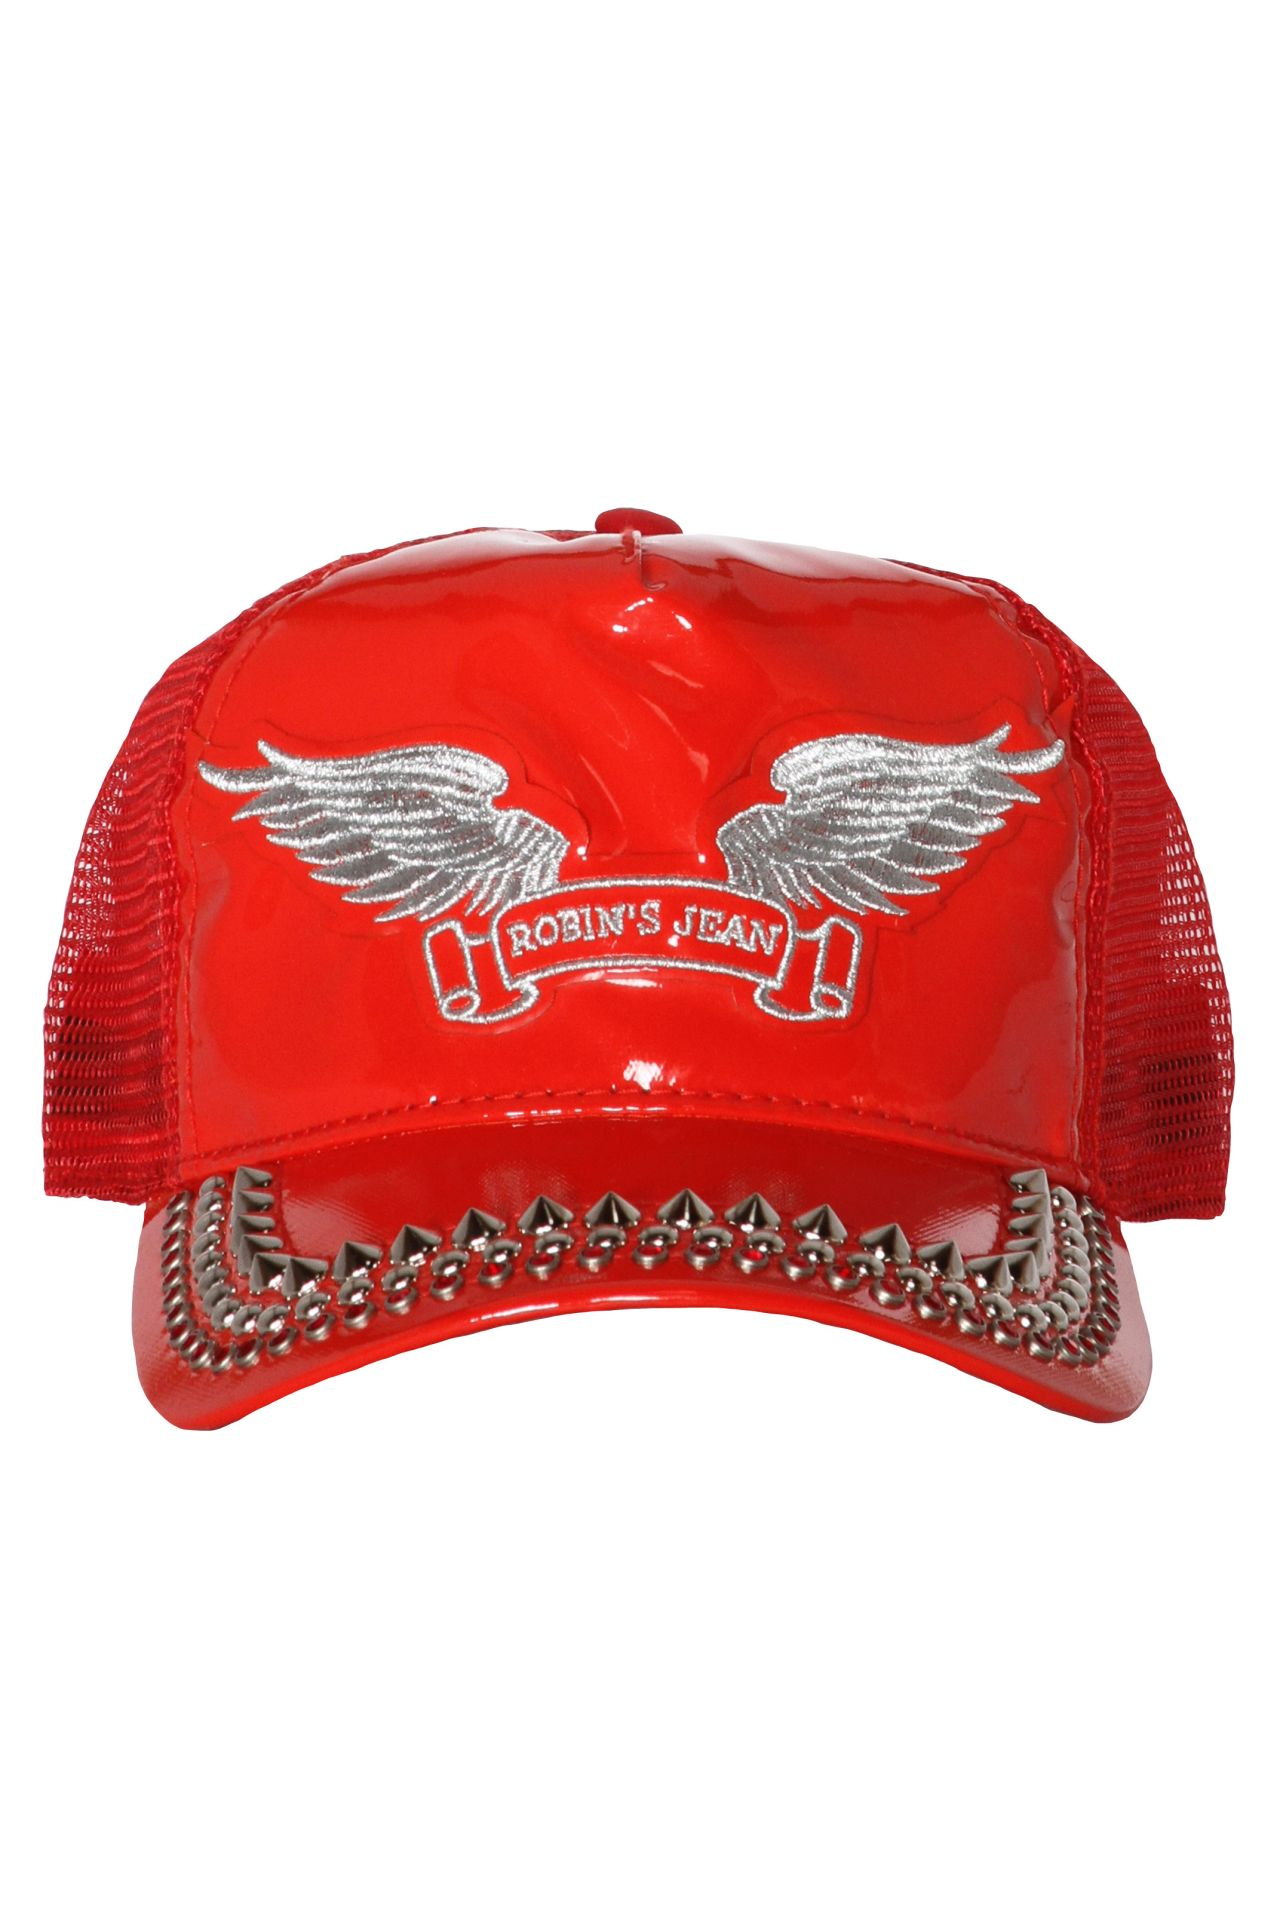 TRUCKER CAP IN PATENT RED WITH CRYSTALS